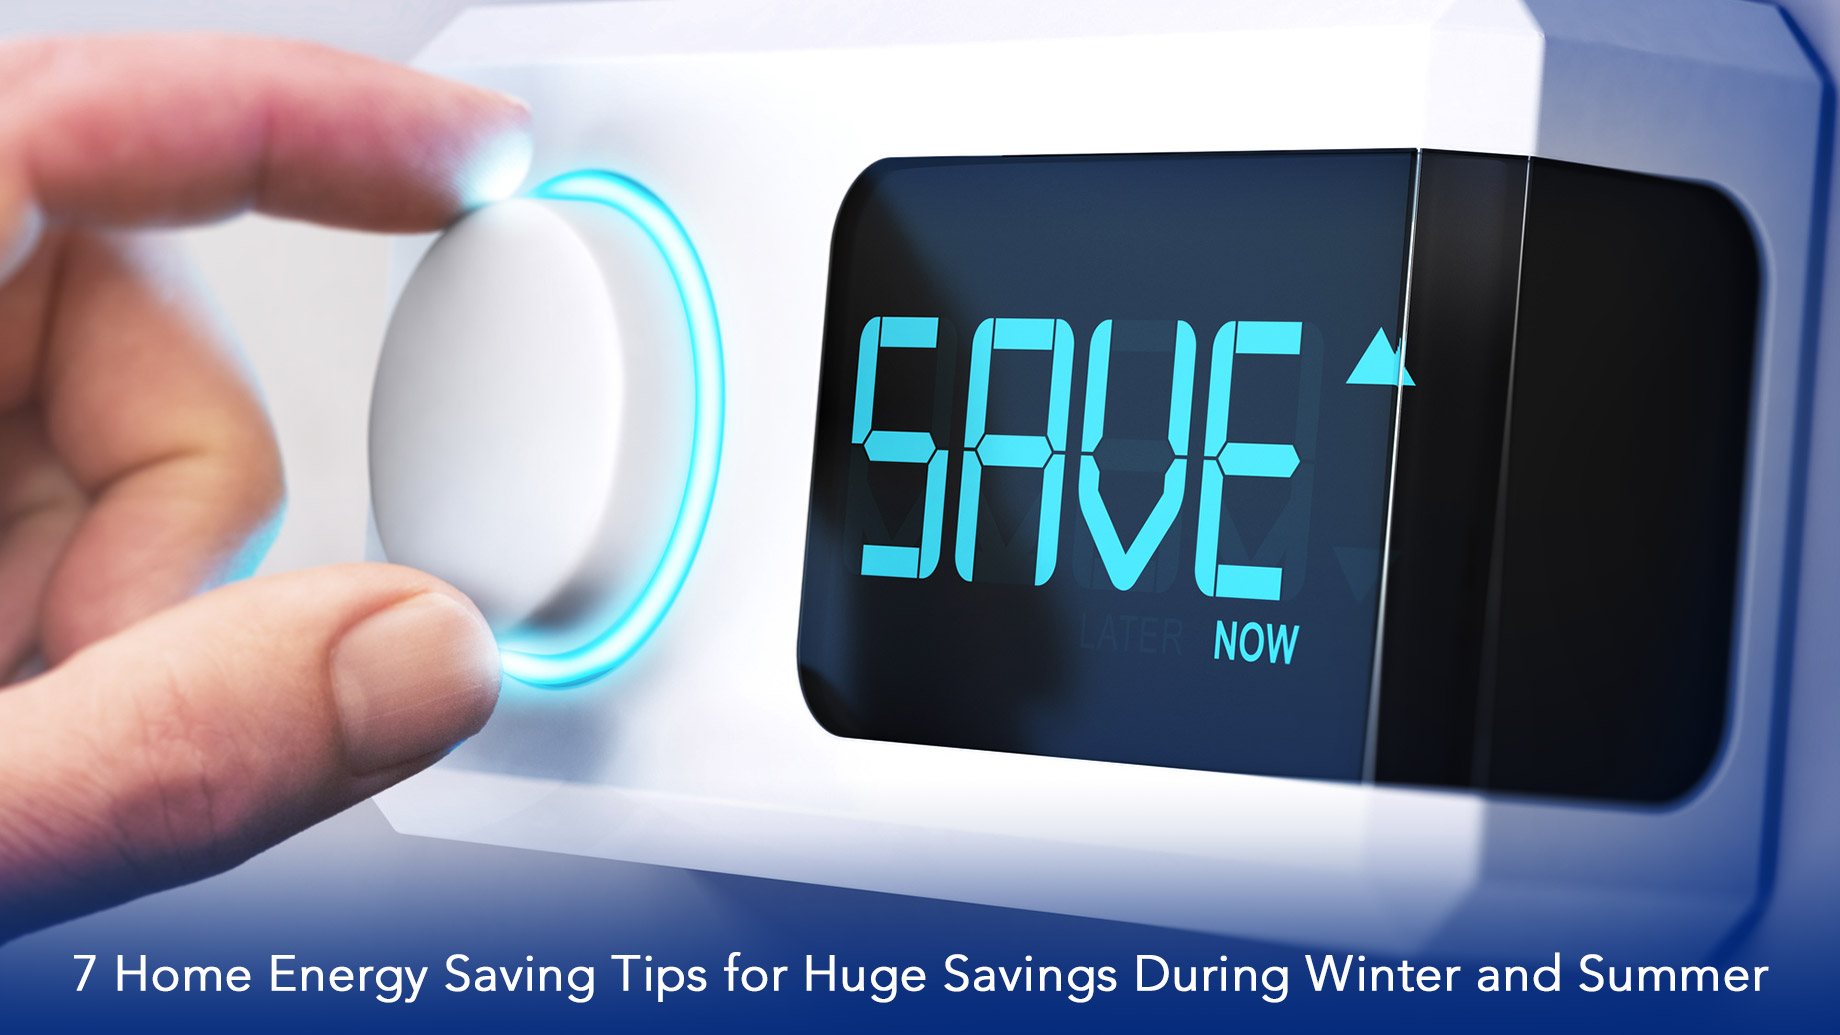 7 Home Energy Saving Tips for Huge Savings During Winter and Summer